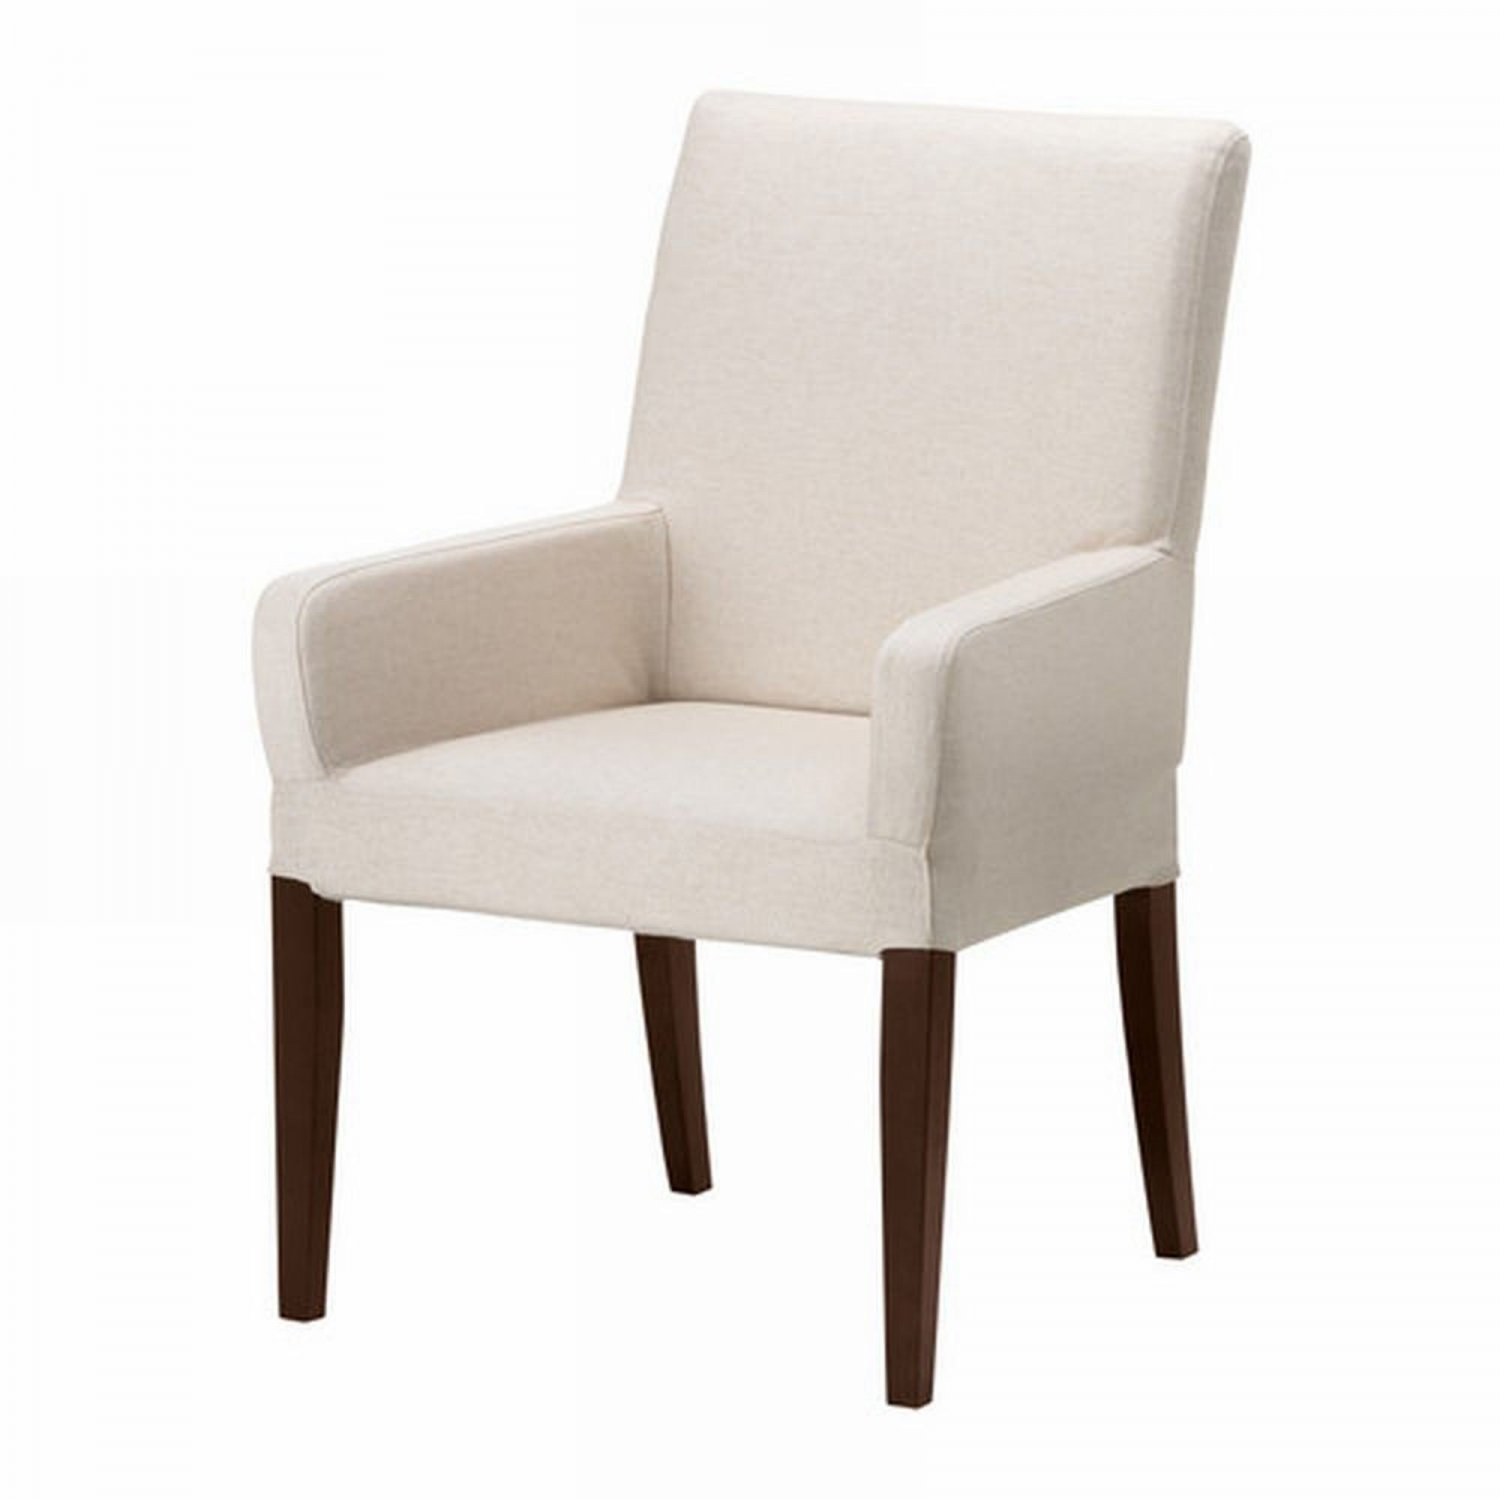 ikea henriksdal chair w arms slipcover cover 21 54cm